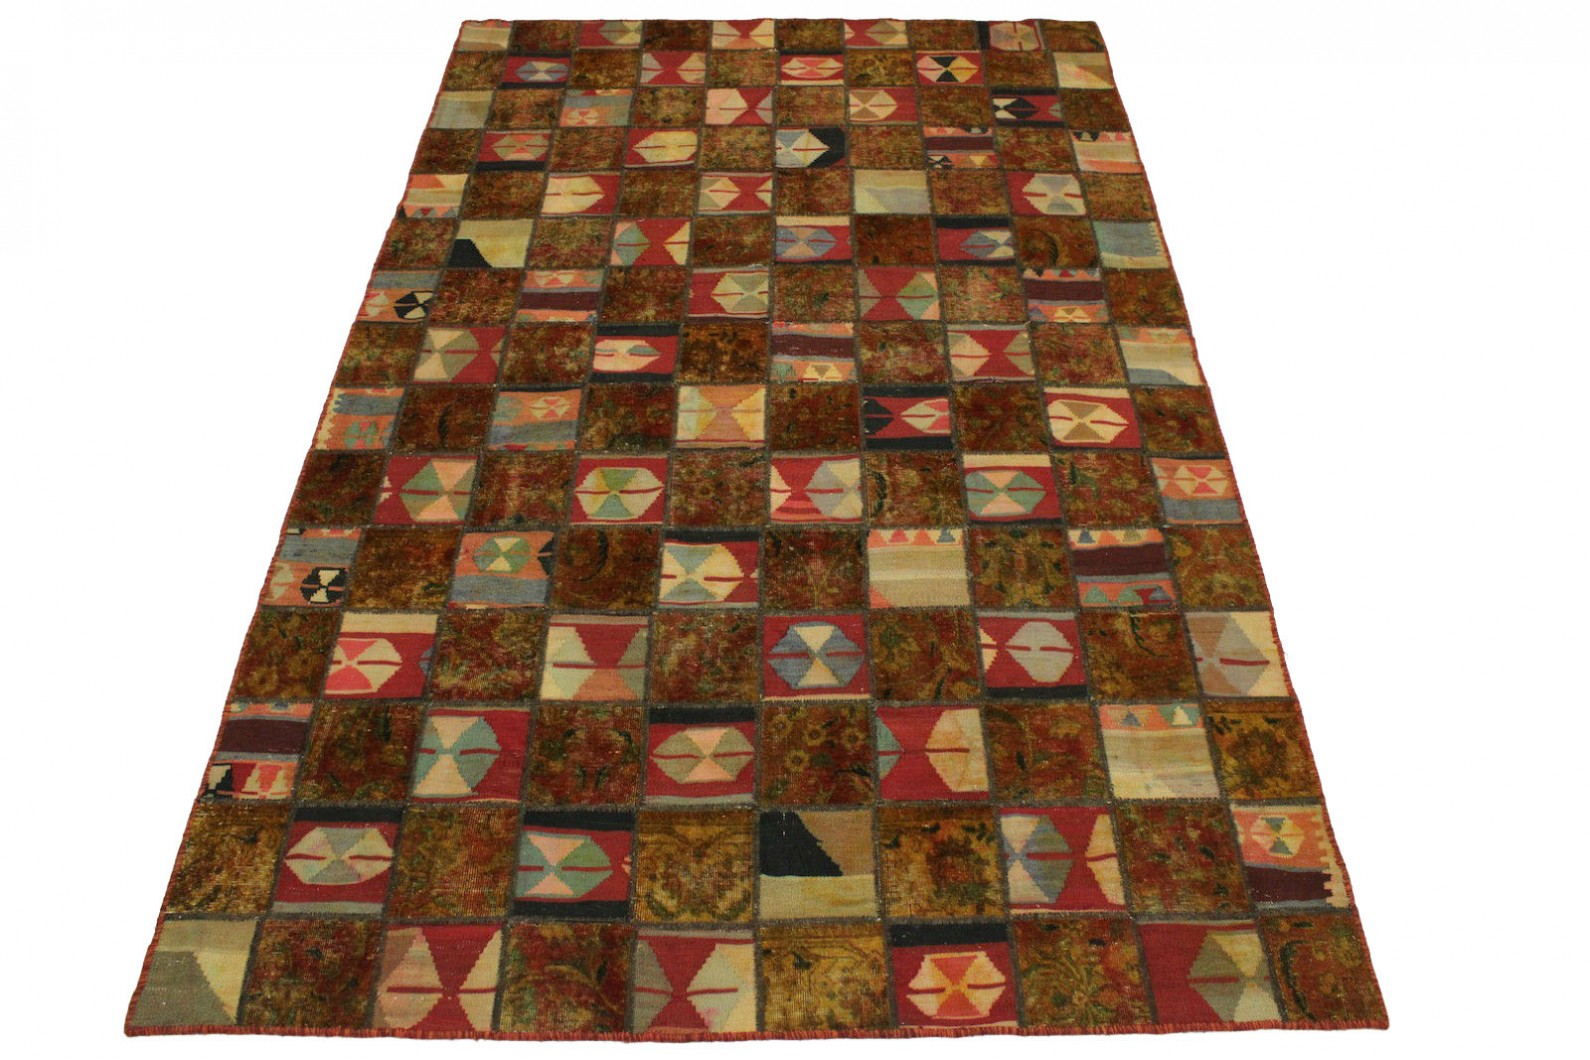 Patchwork Teppich Rot Curry in 300x200cm (1 / 4)